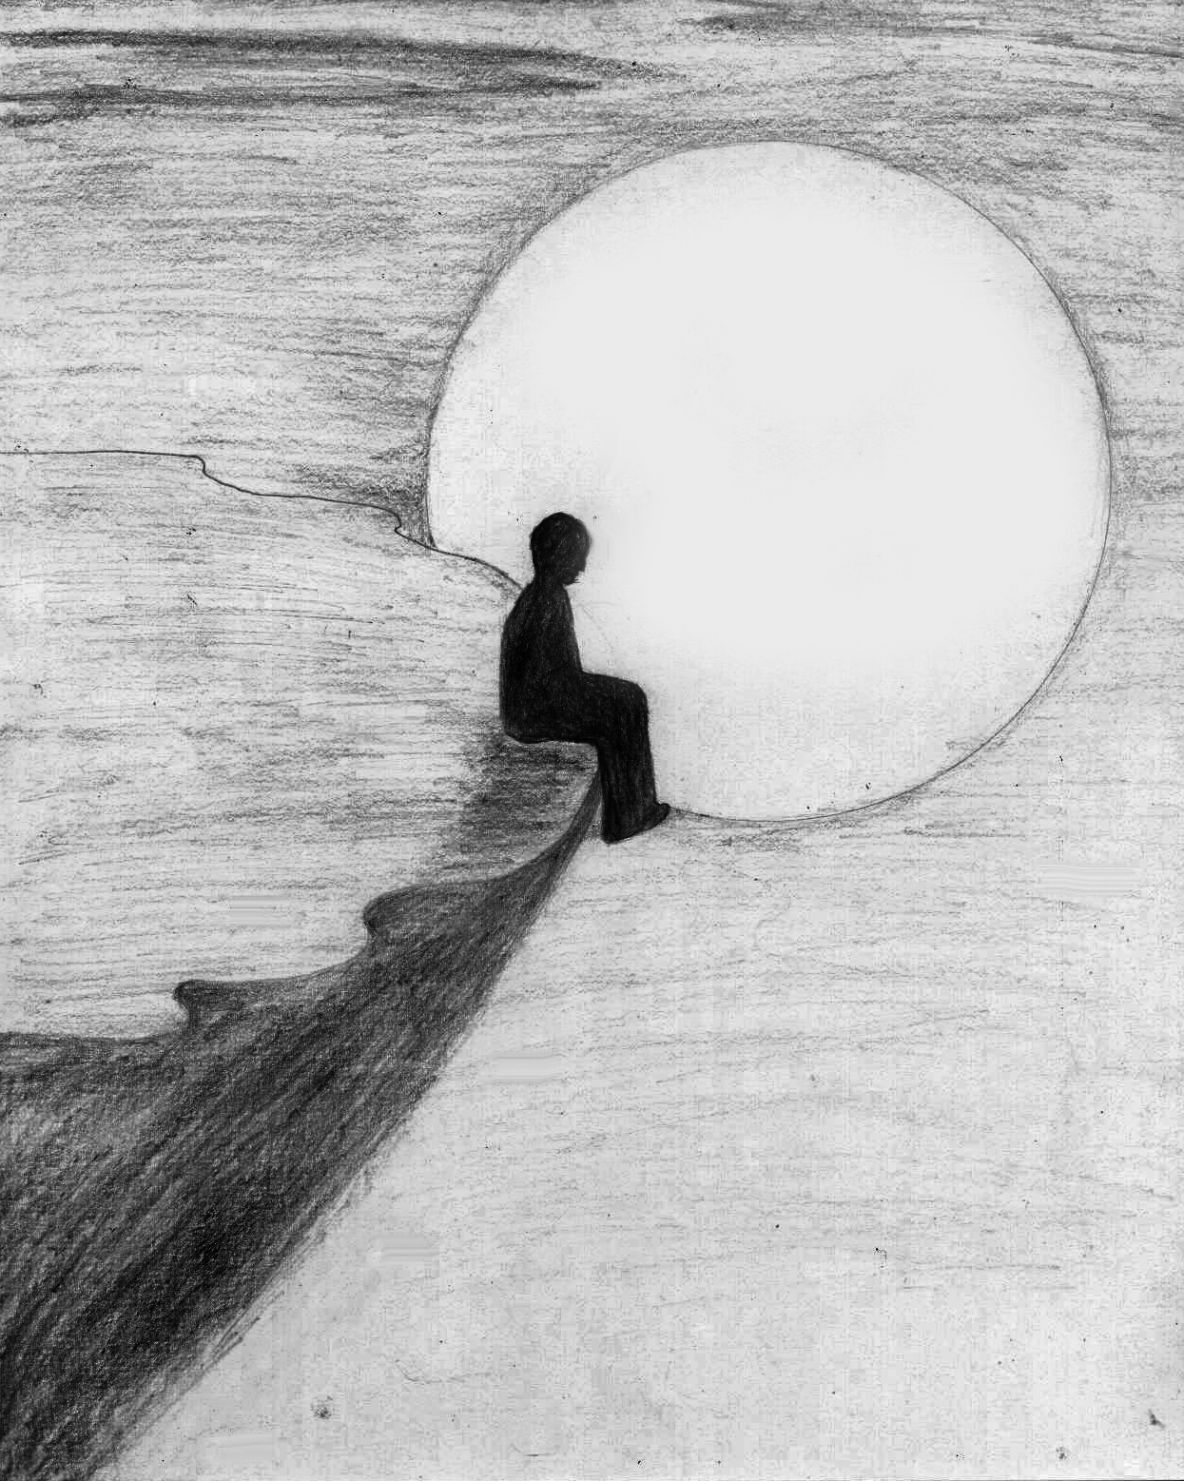 A Lonely Pencil Sketch With Meaning